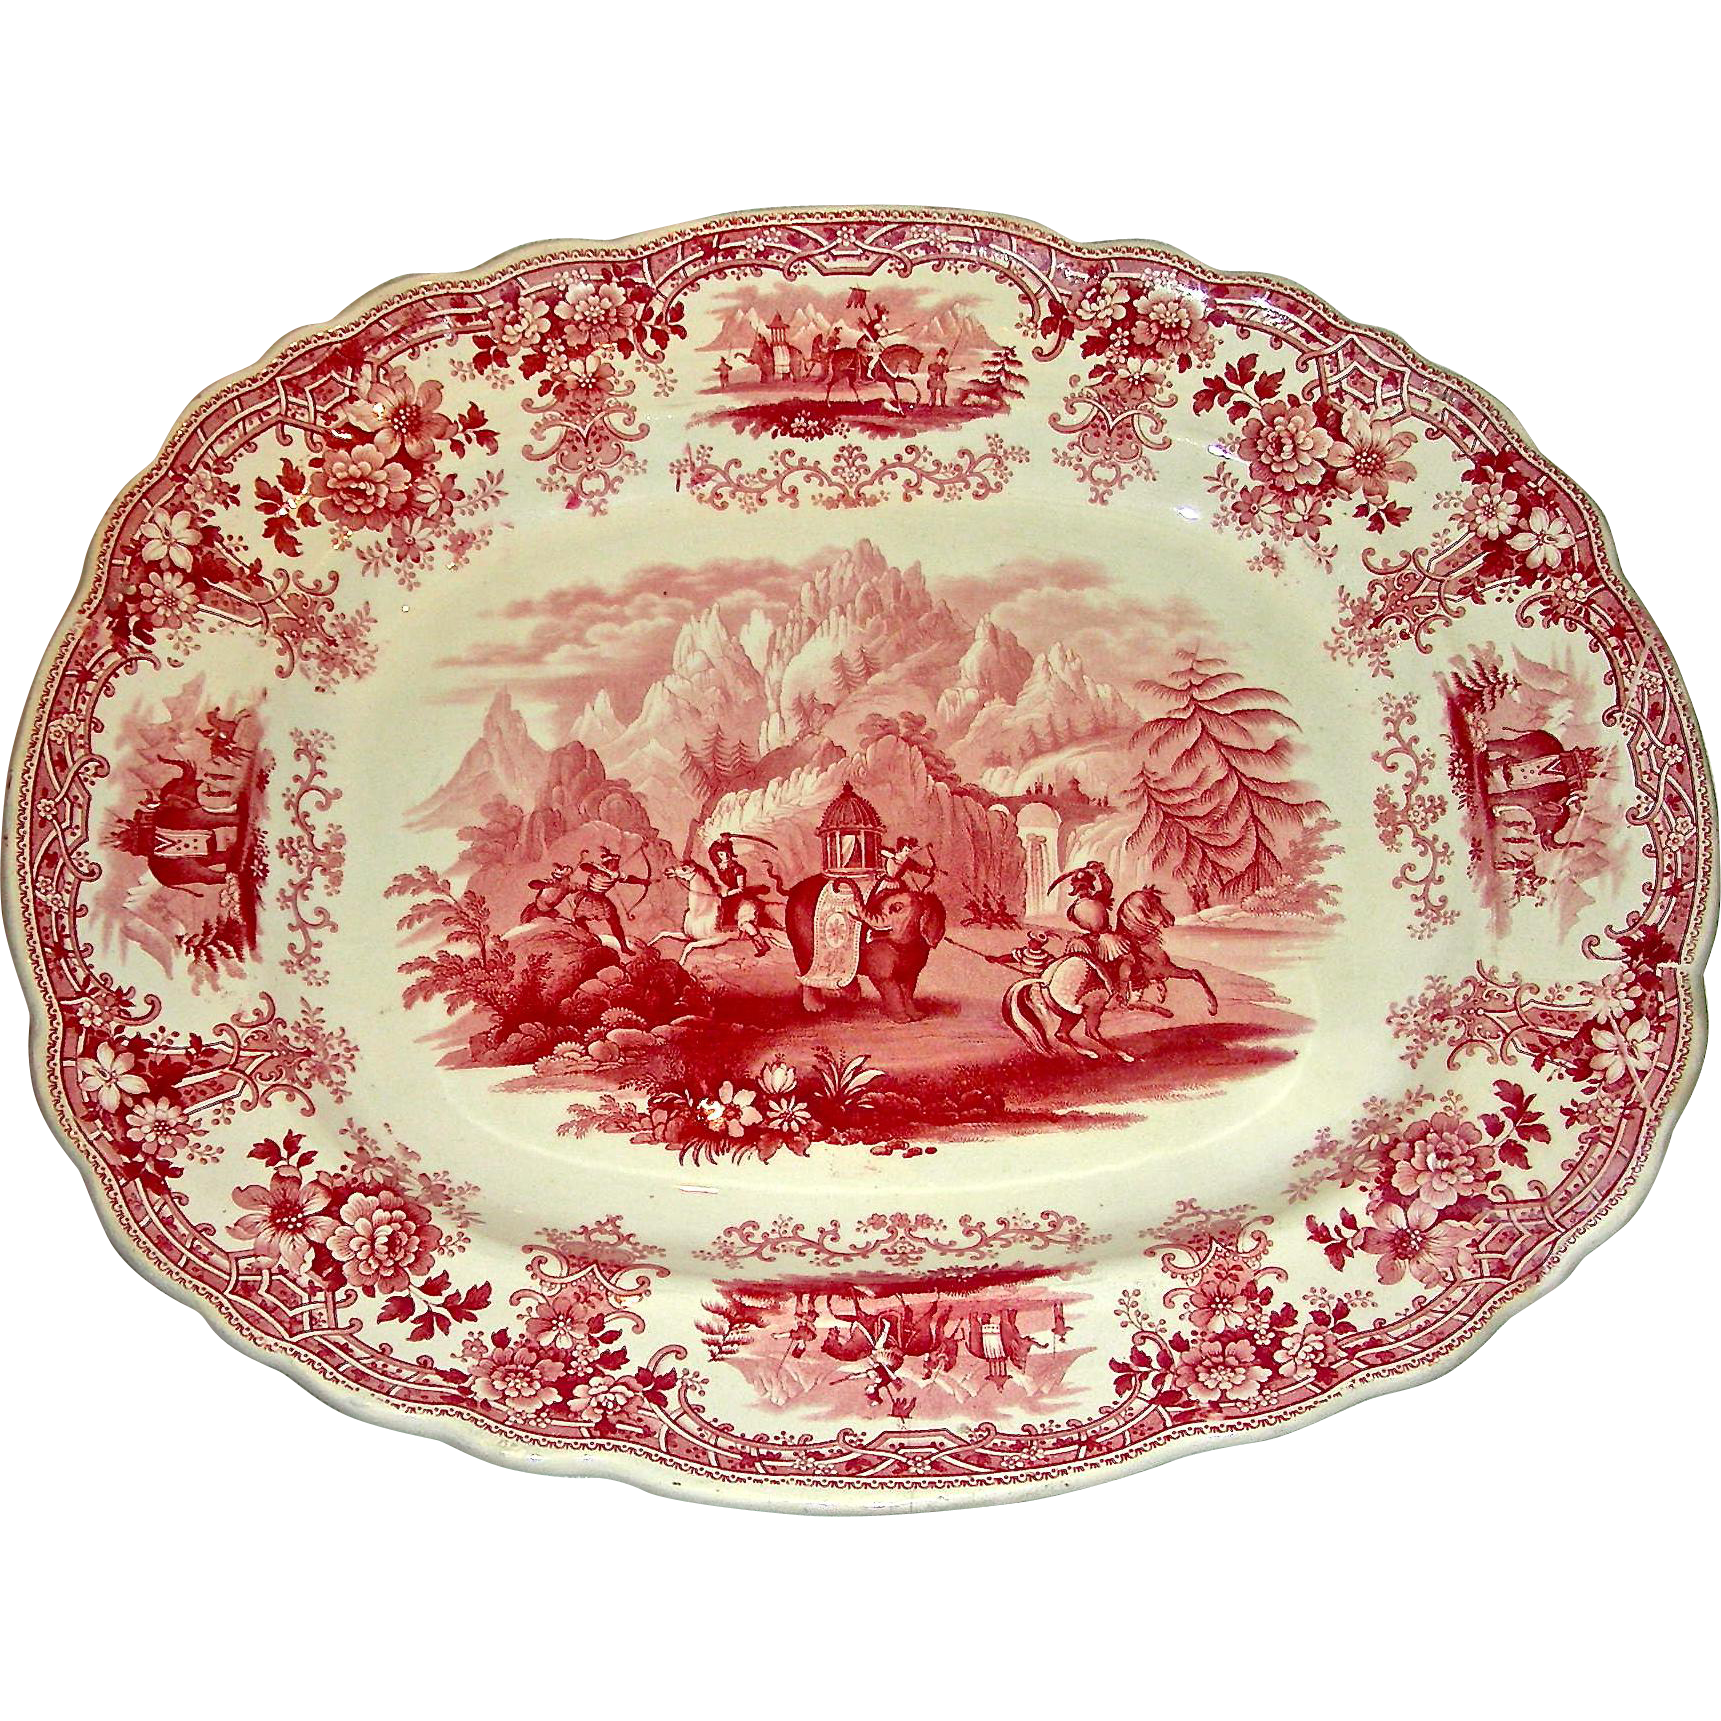 "Red Transfer Staffordshire 15"" Platter: Hannibal Passing the Alps, c. 1840"